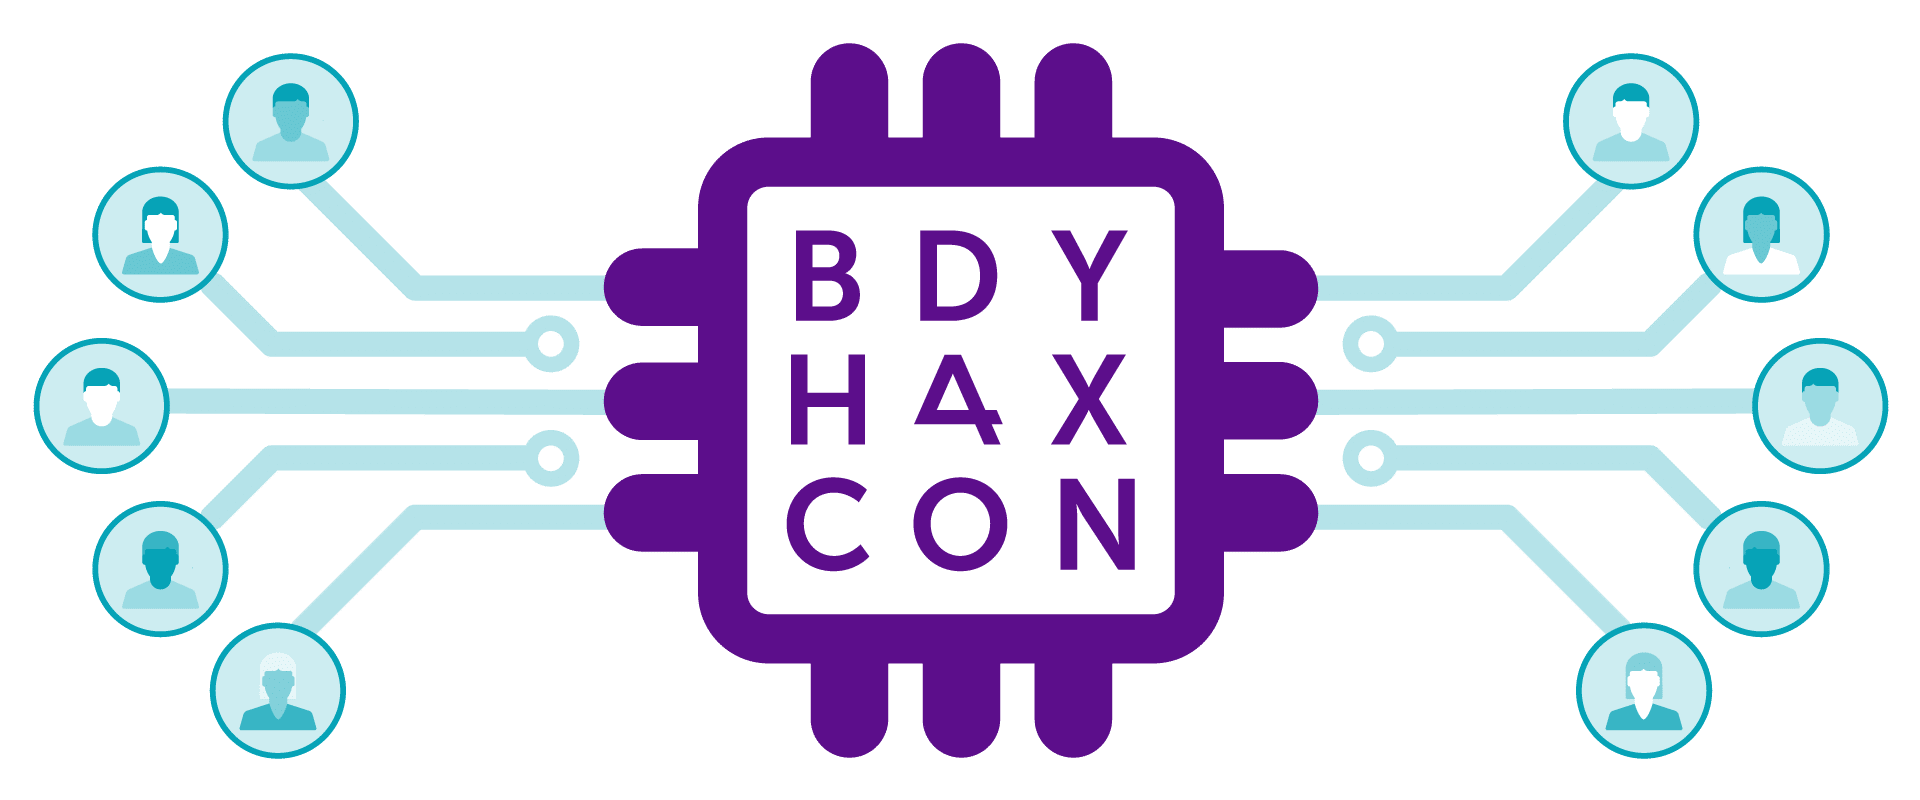 BDYHAX 2017 - Regulation, Certifications, and Standards in Bodyhacking